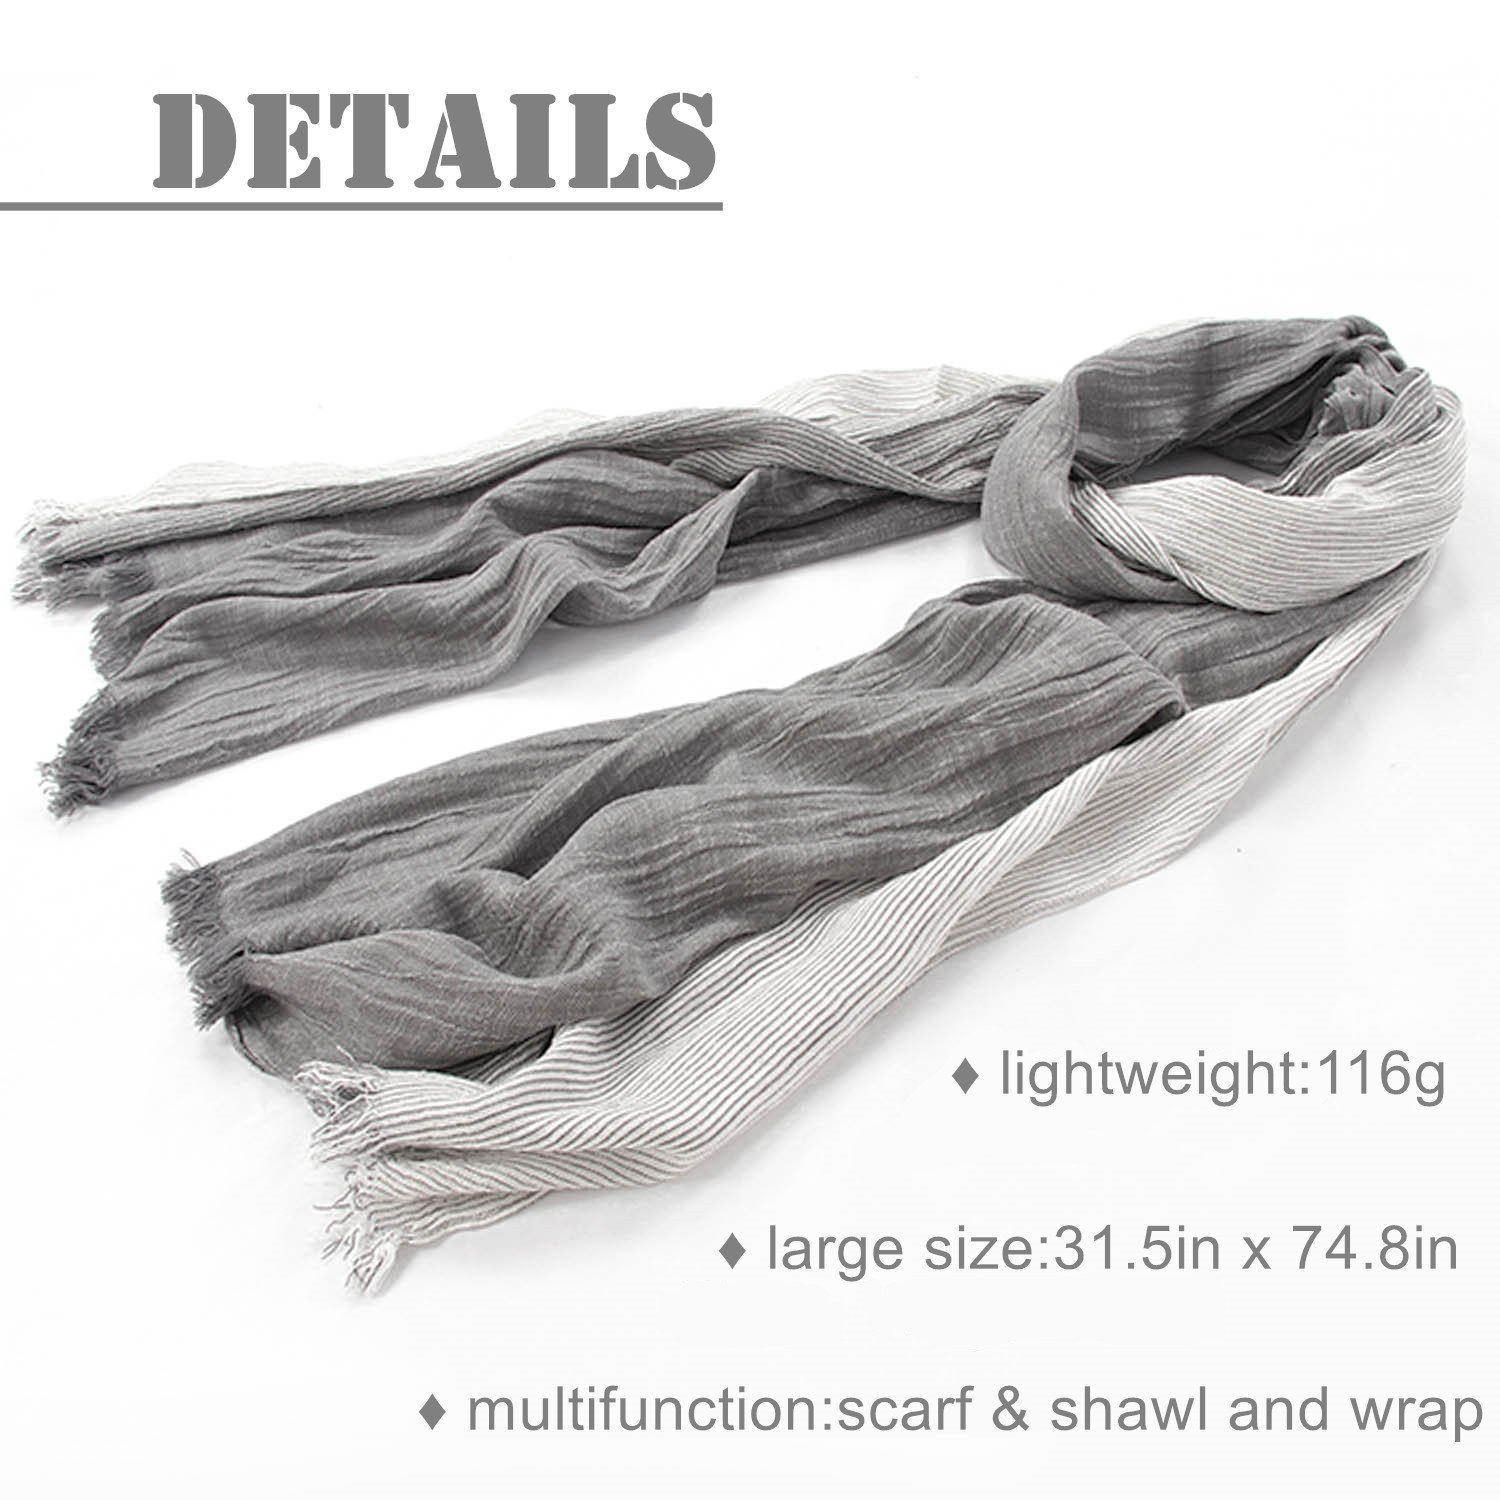 Kalevel Large Scarf Shawl Wrap Cotton Shawls and Wraps with Fringe - Dark Grey by Kalevel (Image #4)